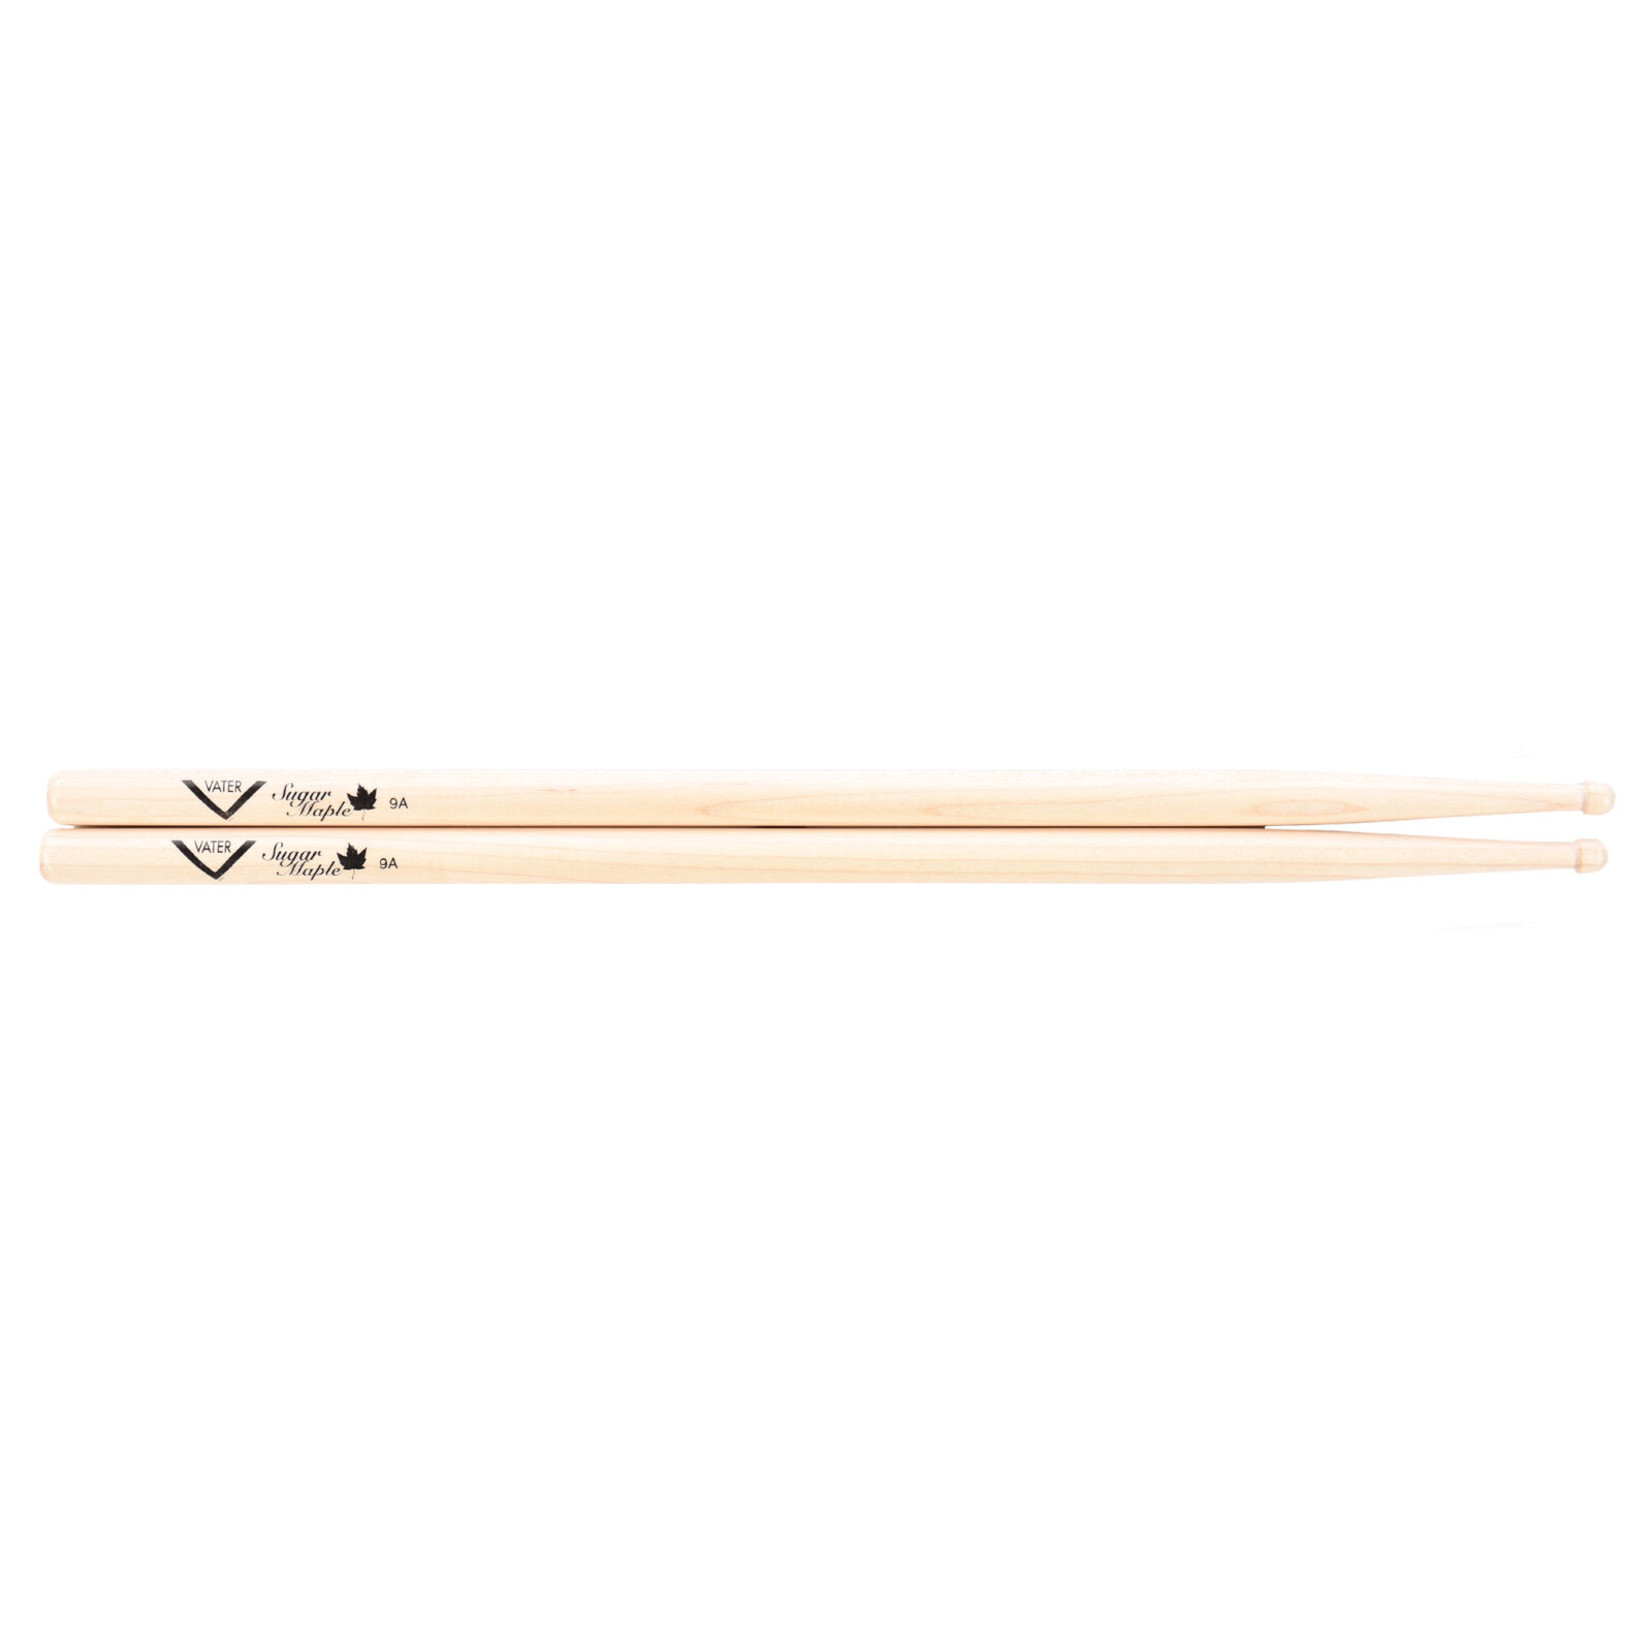 Vater Vater Sugar Maple 9A